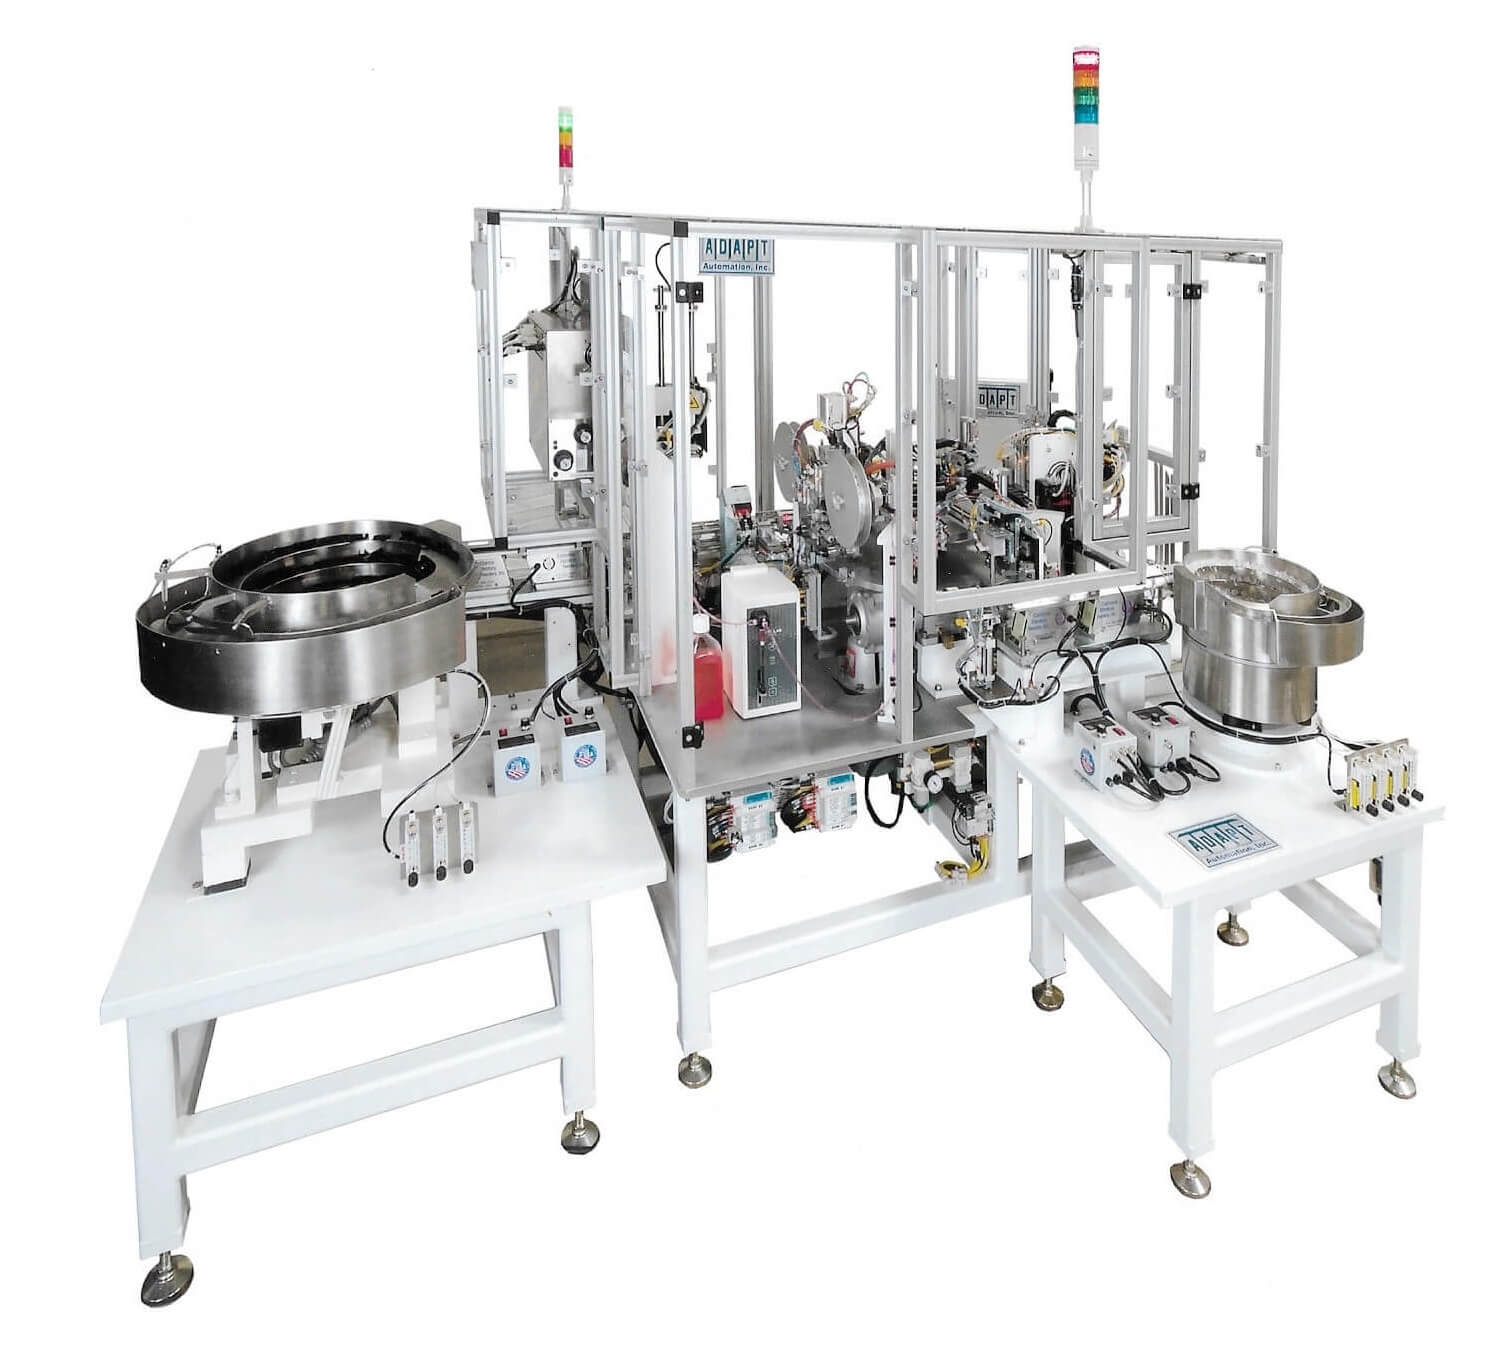 Capsule Vial Fill Seal and Label Machine adapt automation